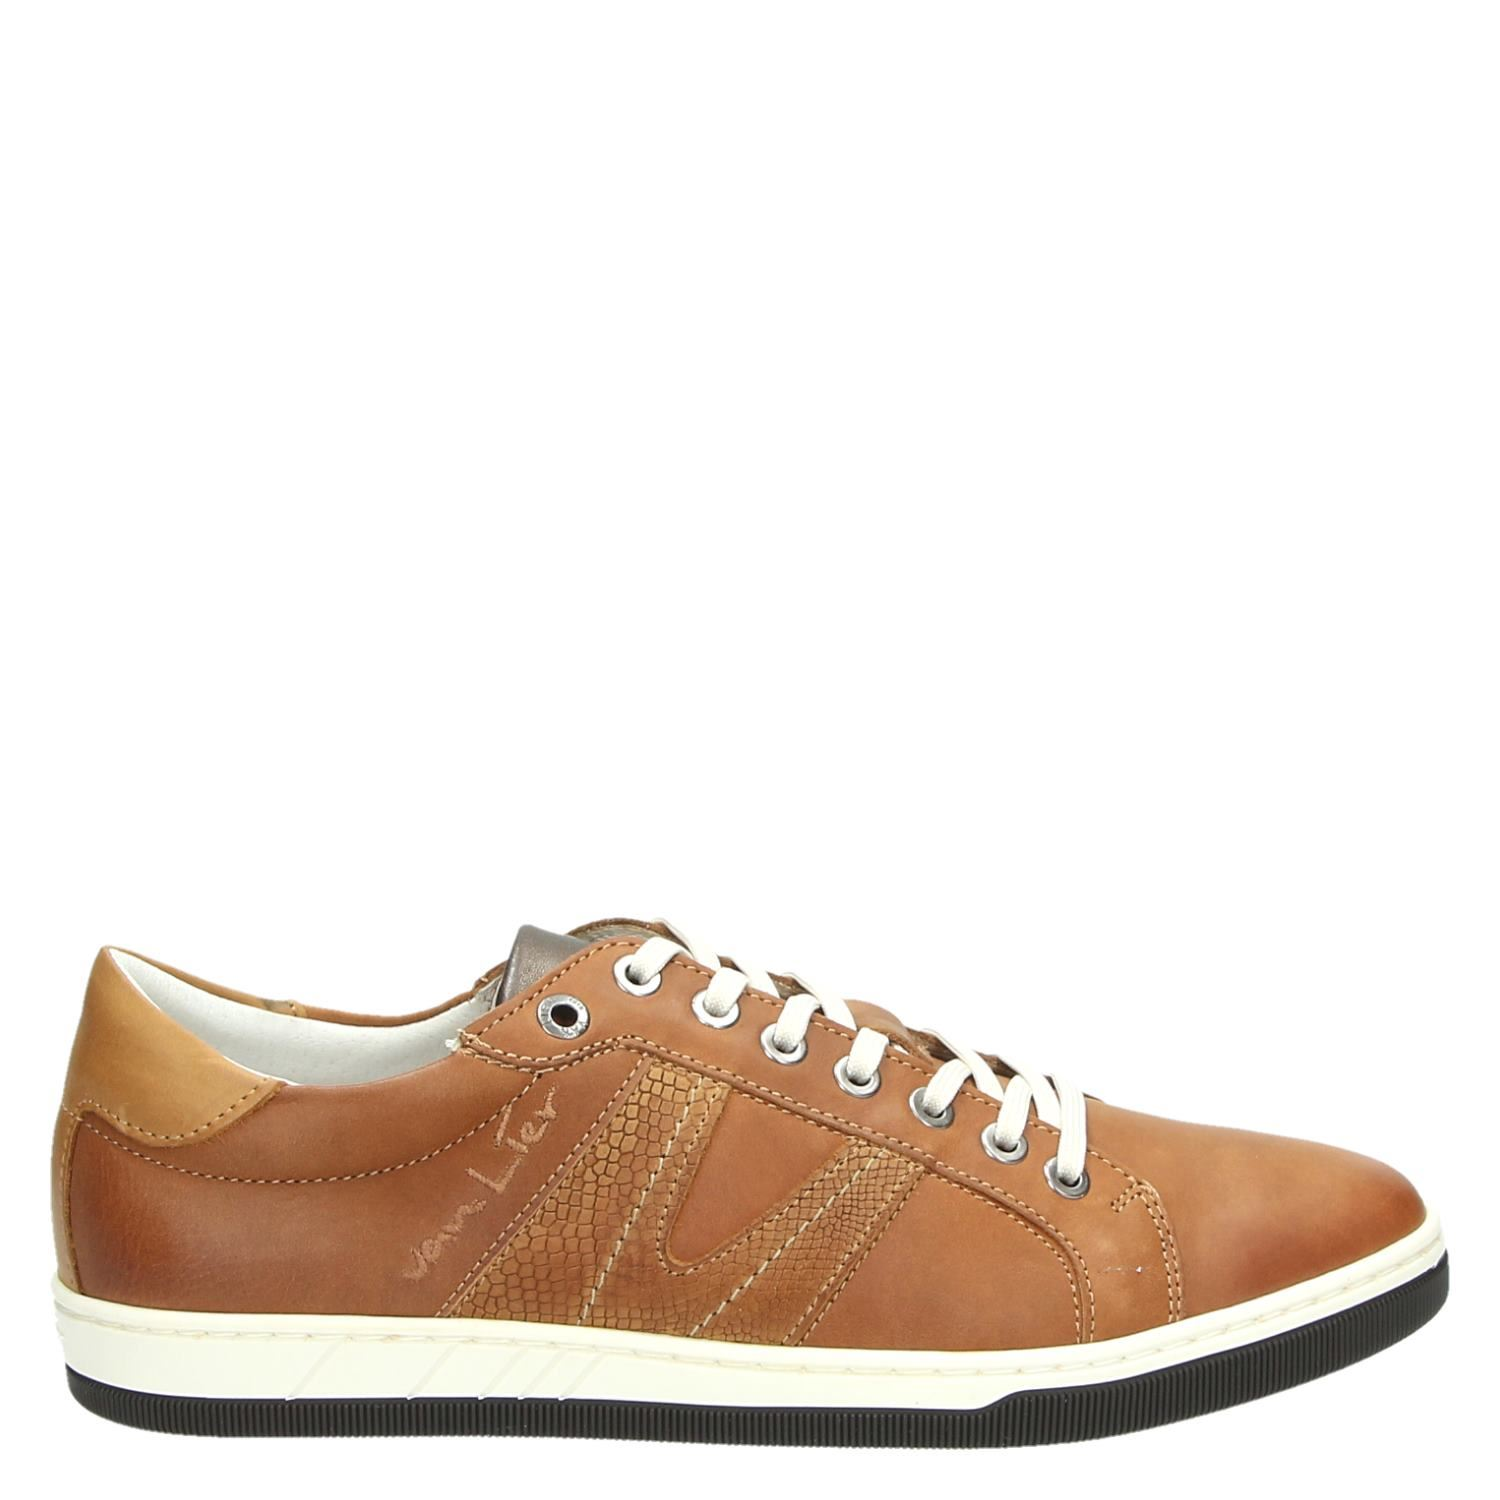 Cognac Baskets Treuil - Hommes - Taille 46 my4msg3